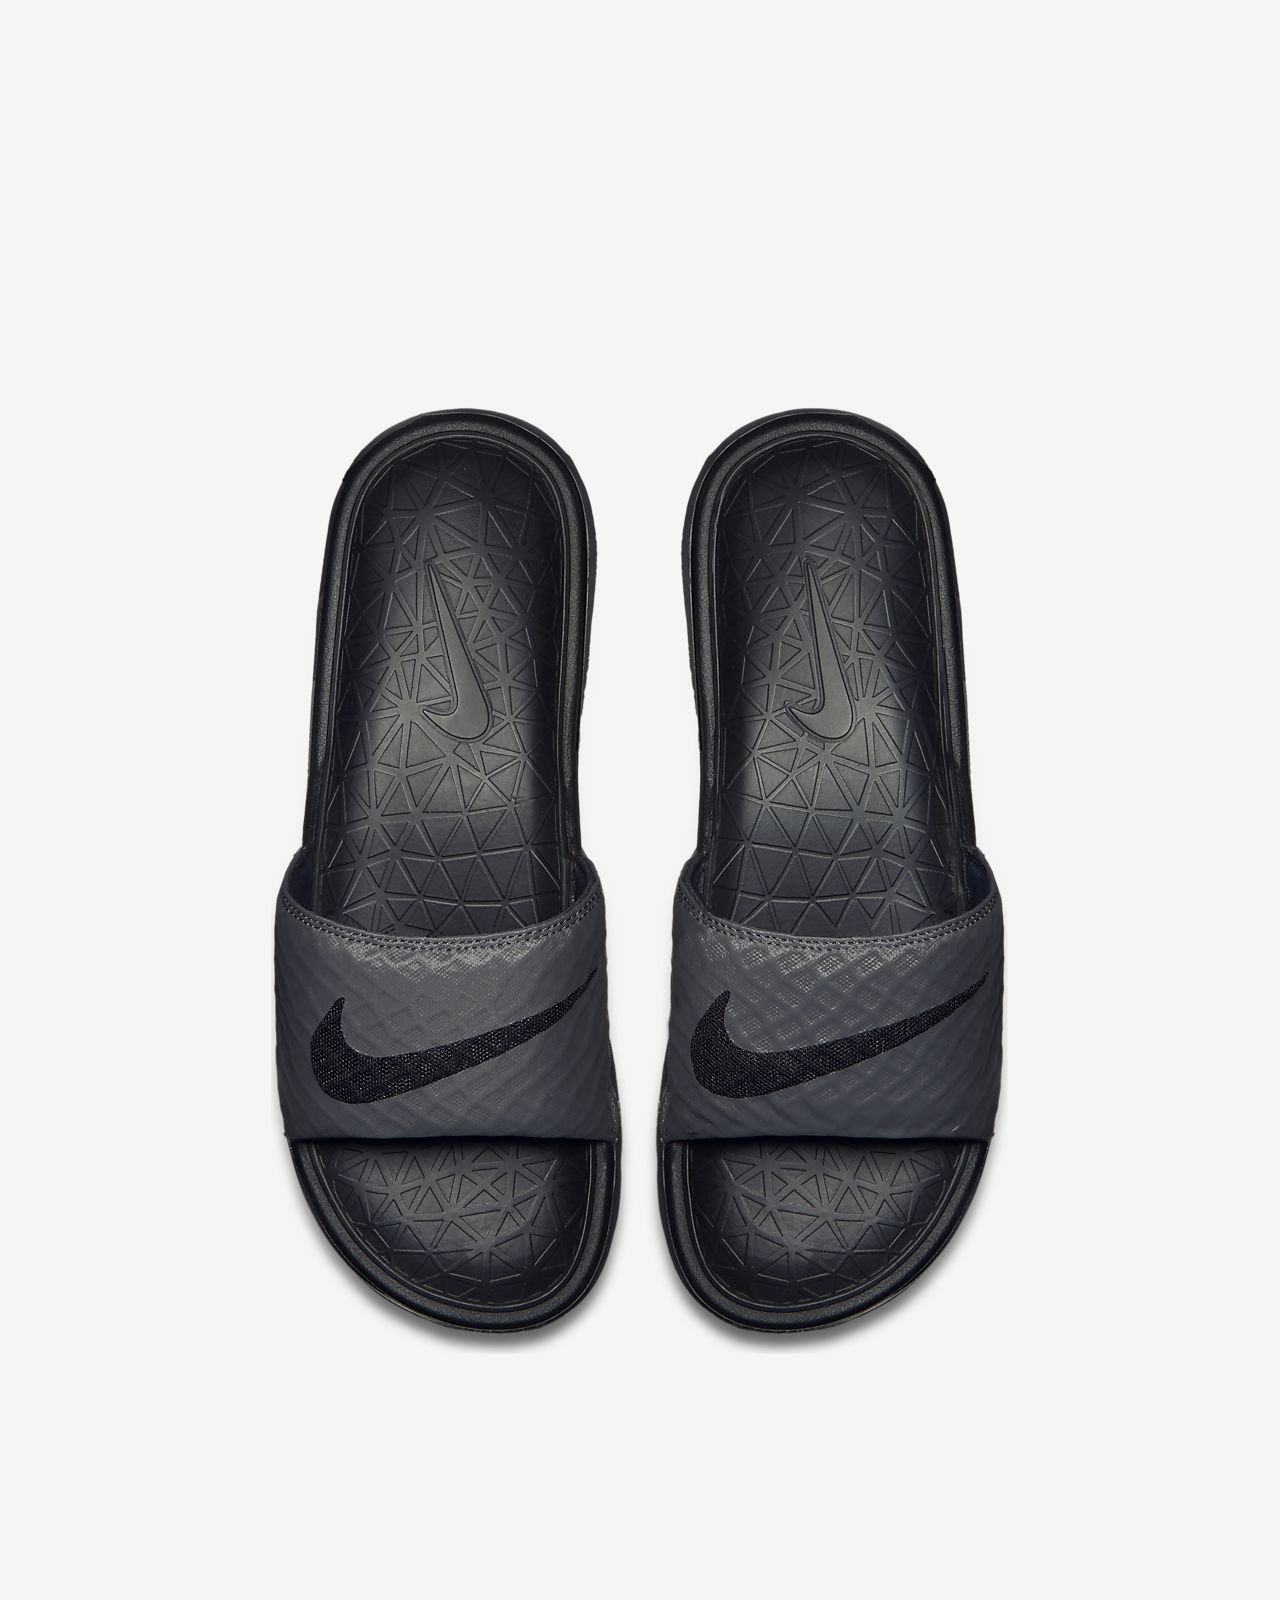 Nike Benassi Solarsoft 2 herenslipper